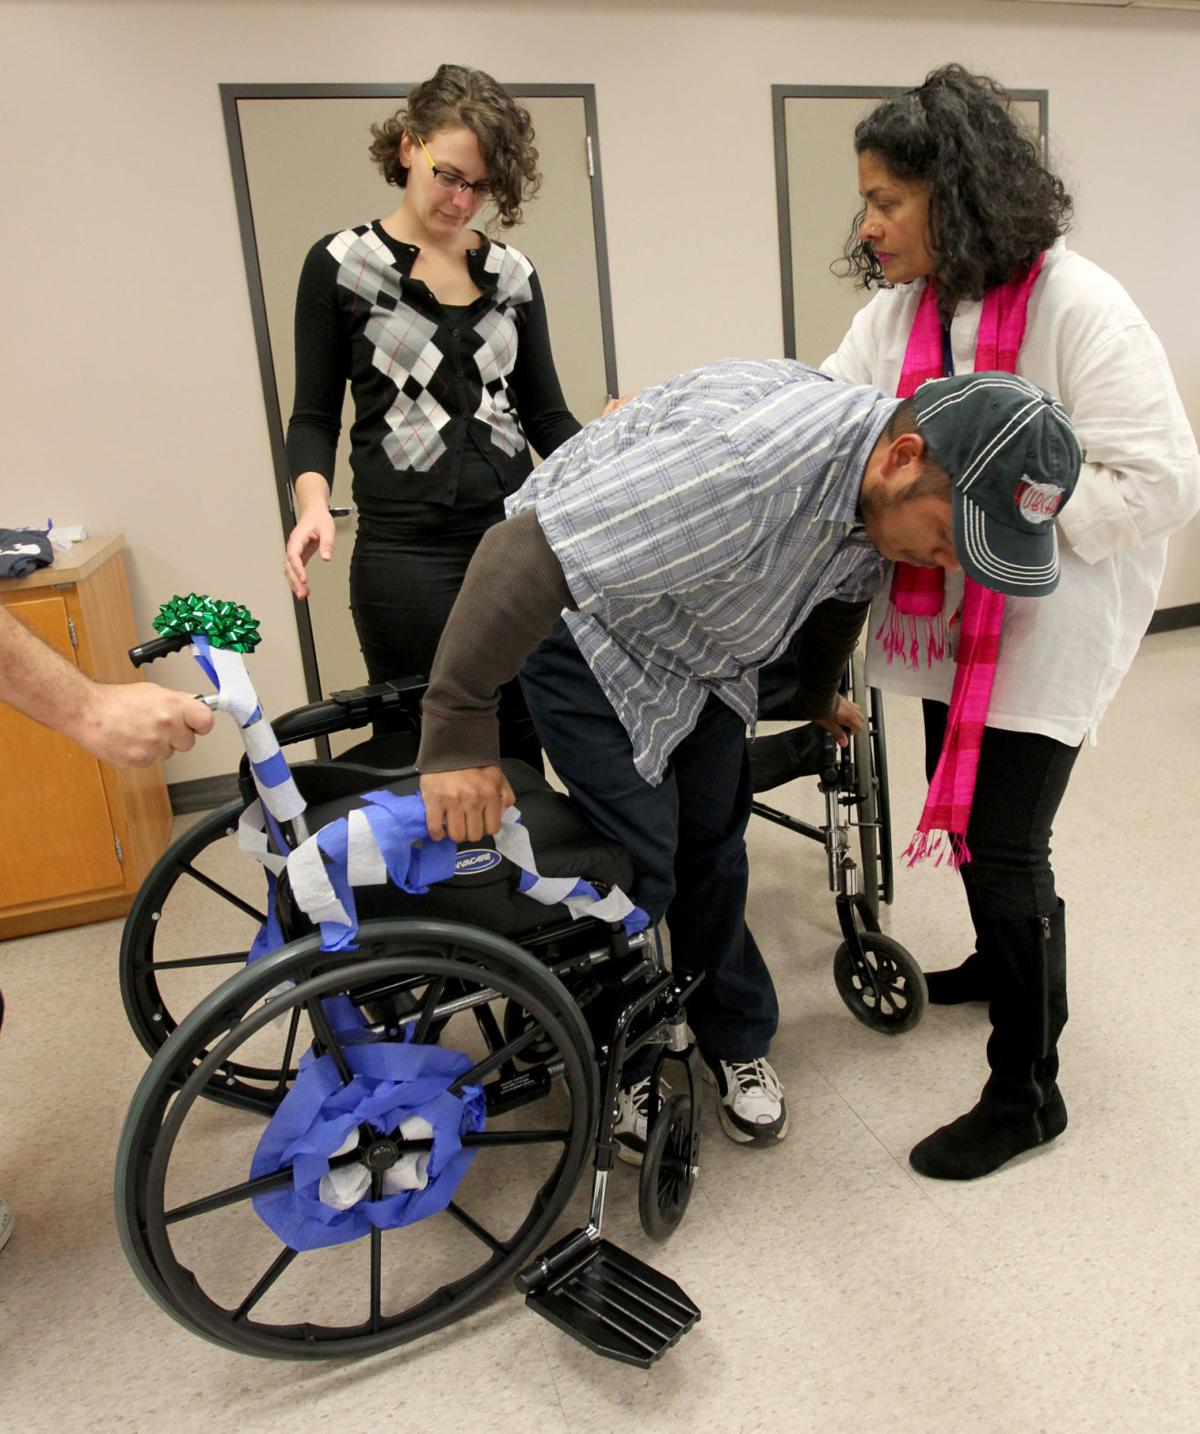 Occupational Therapy Students Surprise Client With New